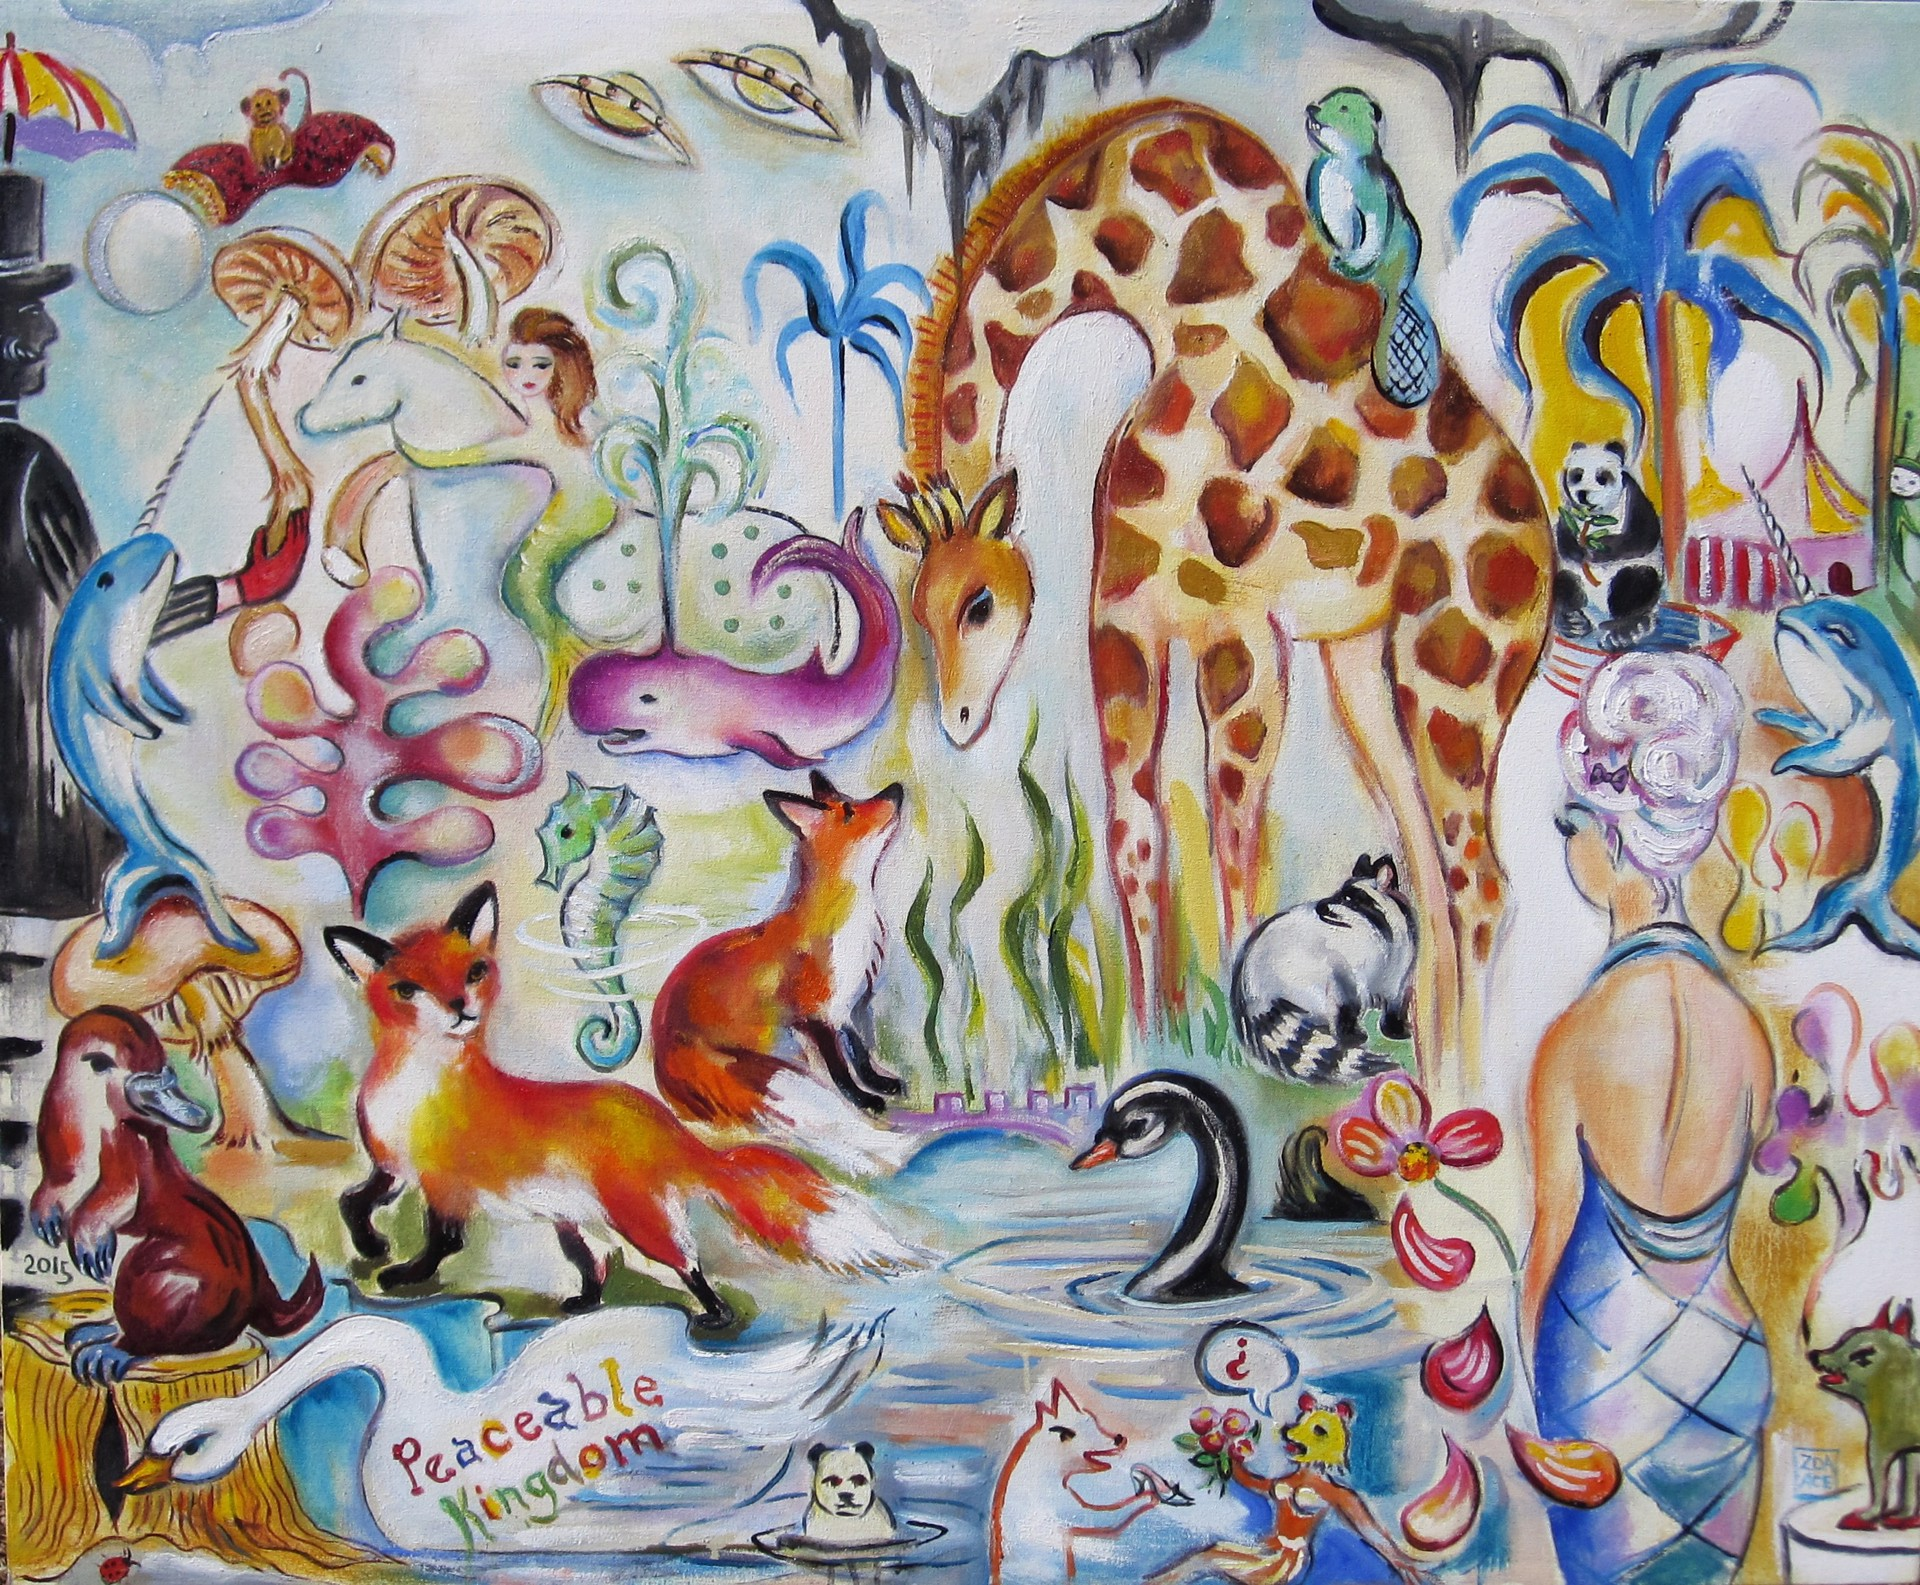 Peaceable Kingdom by Zoa Ace